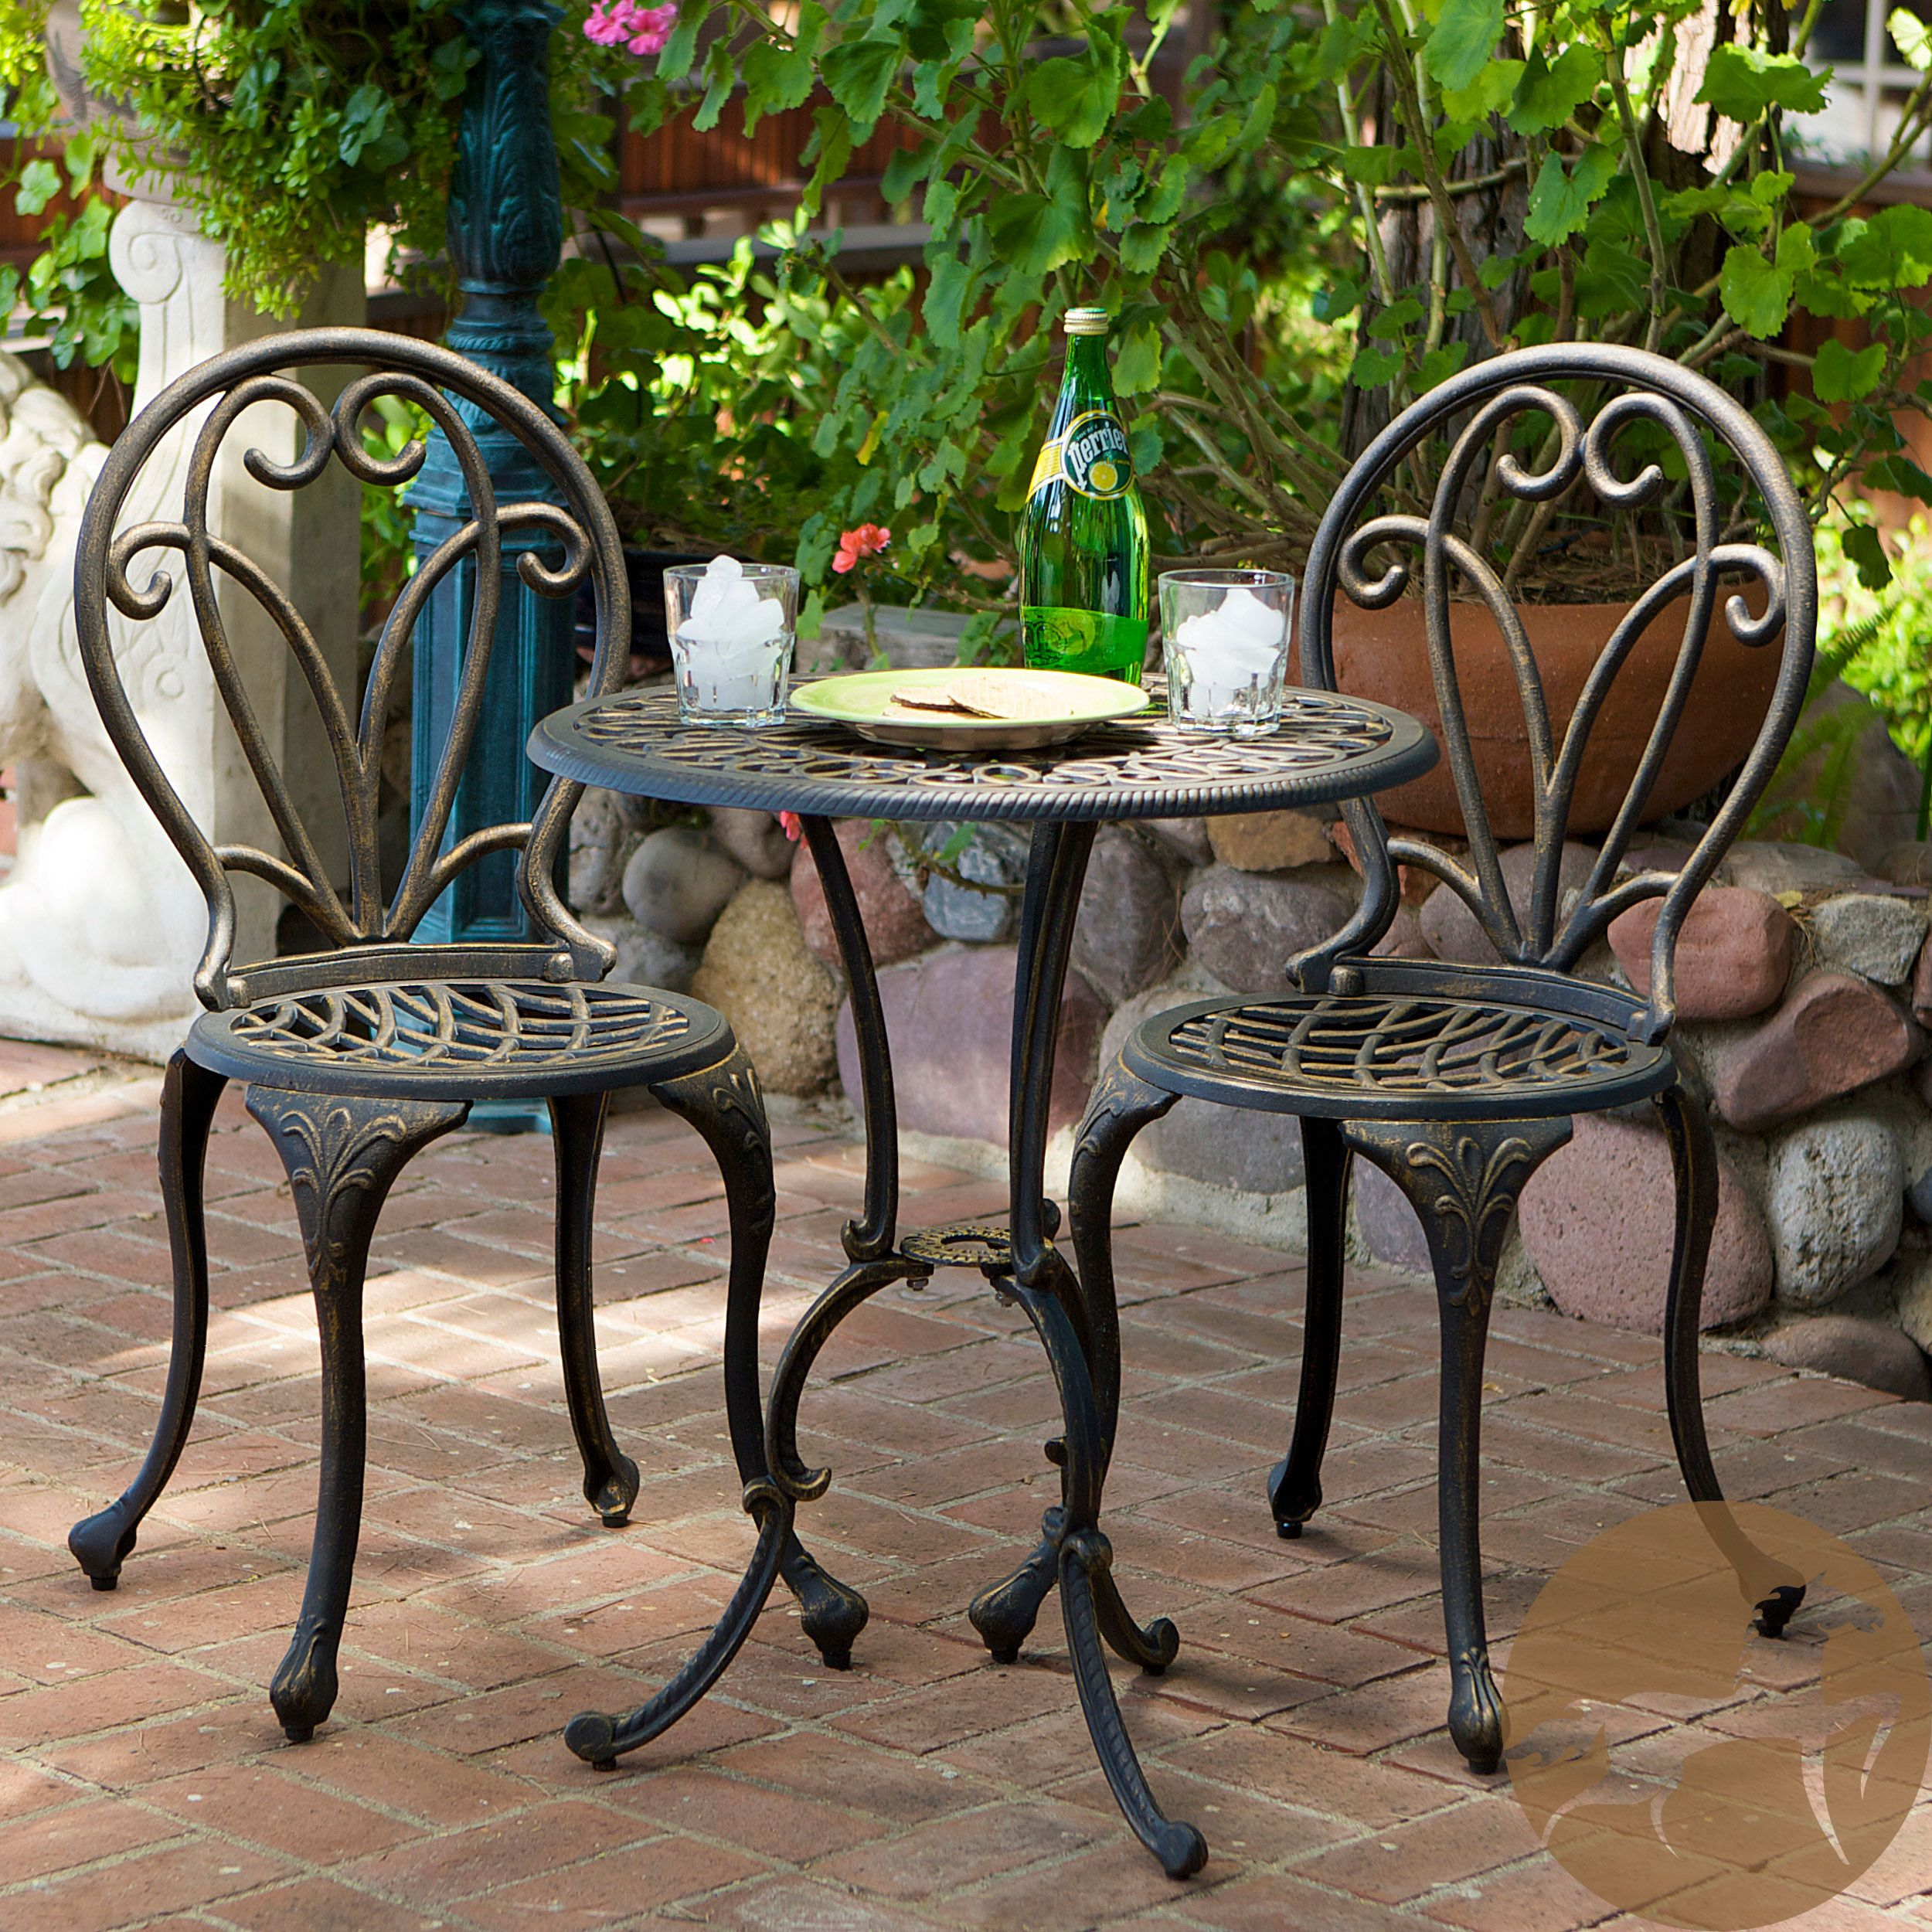 This French Style Outdoor Bistro Set Will Lend Classy Style To Your Patio.  The